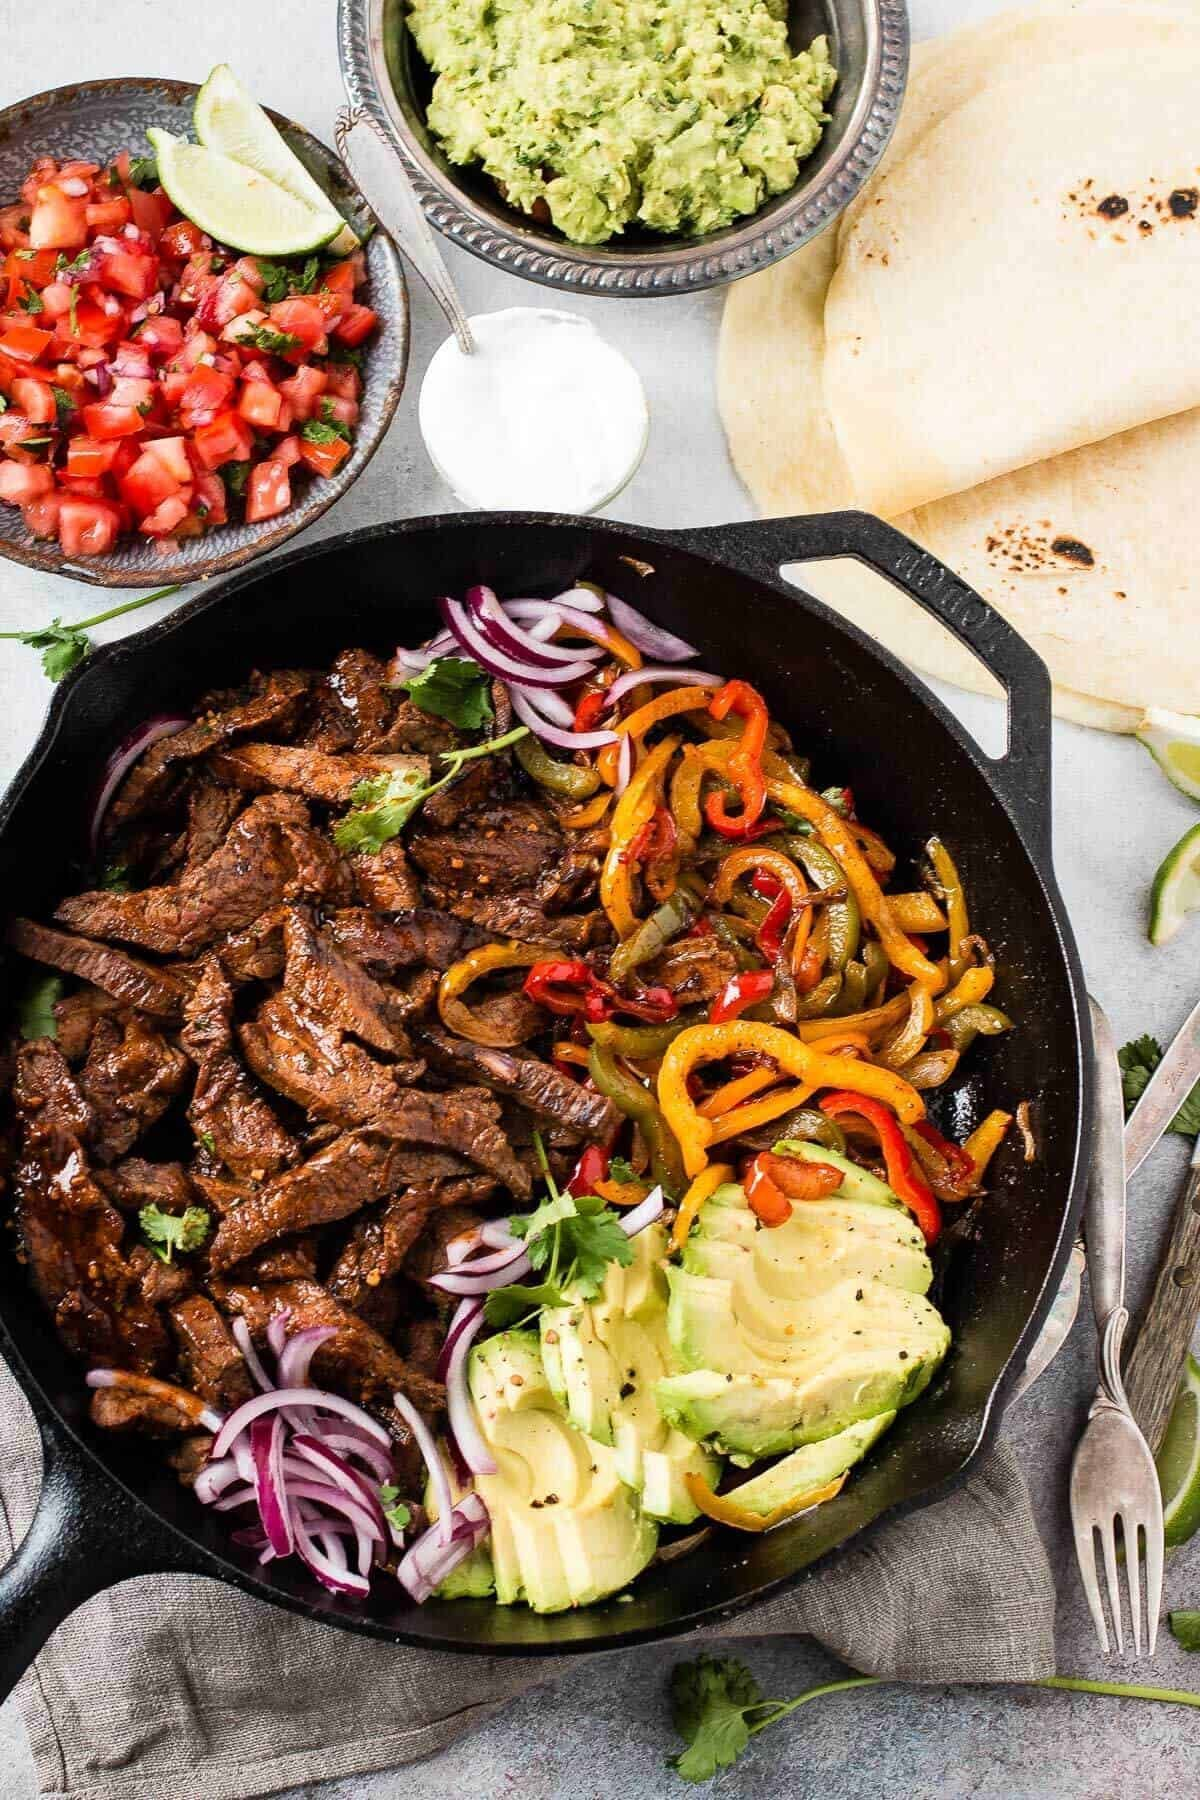 Our Favorite Steak Fajitas Marinade #steakfajitarecipe The secret to the best steak fajitas recipe is all about the marinade. You'll need three different citrus juices... ohsweetbasil.com #beeffajitamarinade Our Favorite Steak Fajitas Marinade #steakfajitarecipe The secret to the best steak fajitas recipe is all about the marinade. You'll need three different citrus juices... ohsweetbasil.com #beeffajitarecipe